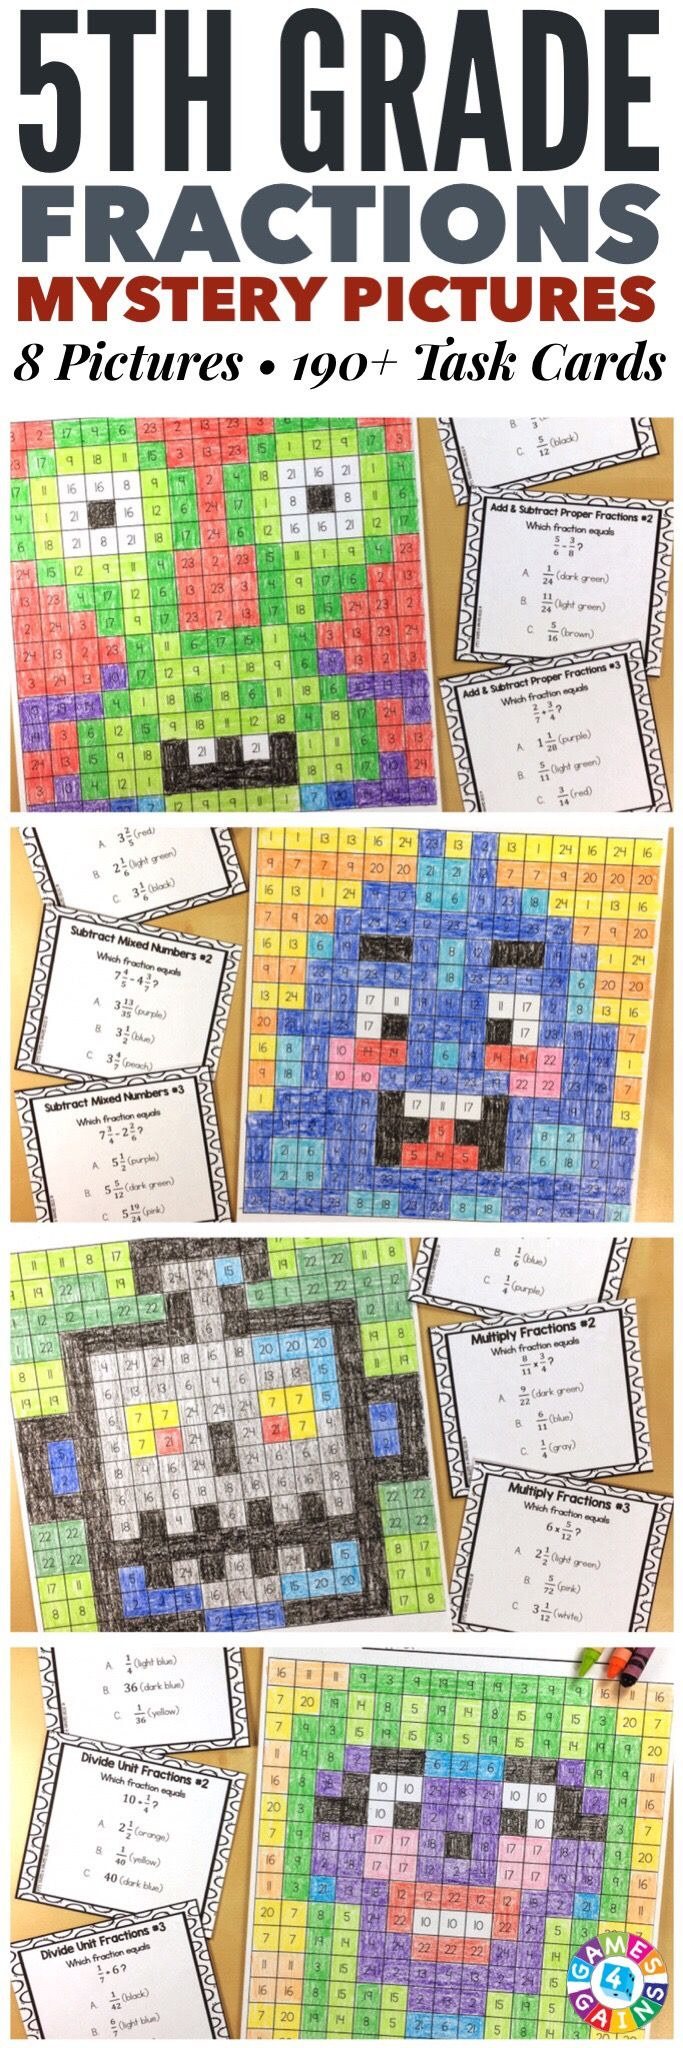 """""""I LOVE these mystery pictures for reinforcing concepts!"""" These 5th Grade Fractions Mystery Pictures are perfect for practicing key 5th grade Common Core fractions standards. This set includes 8 different pictures and over 190 task cards covering simplifying proper fractions and mixed numbers, adding and subtracting proper fractions with unlike denominators, adding mixed numbers, subtracting mixed numbers, multiplying fractions, and dividing fractions!"""